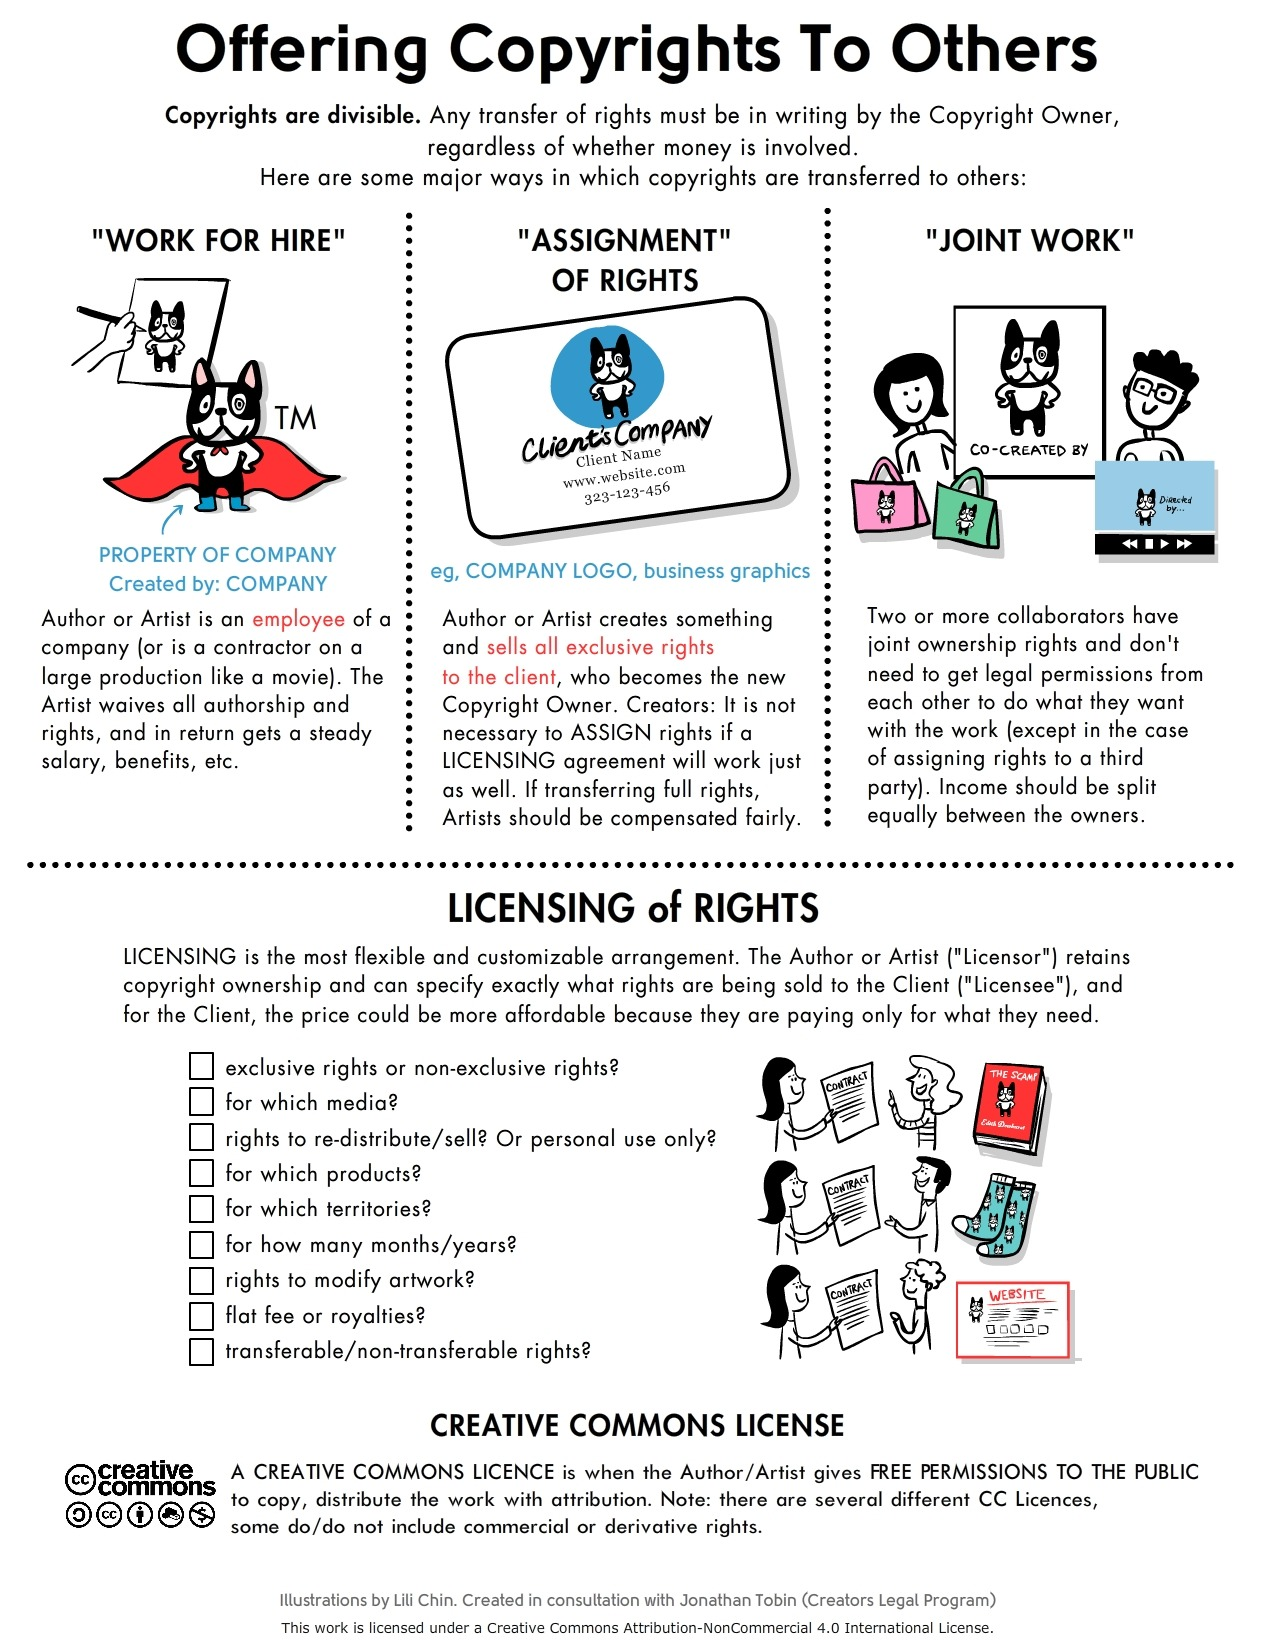 Offering Copyrights to Others Infographic